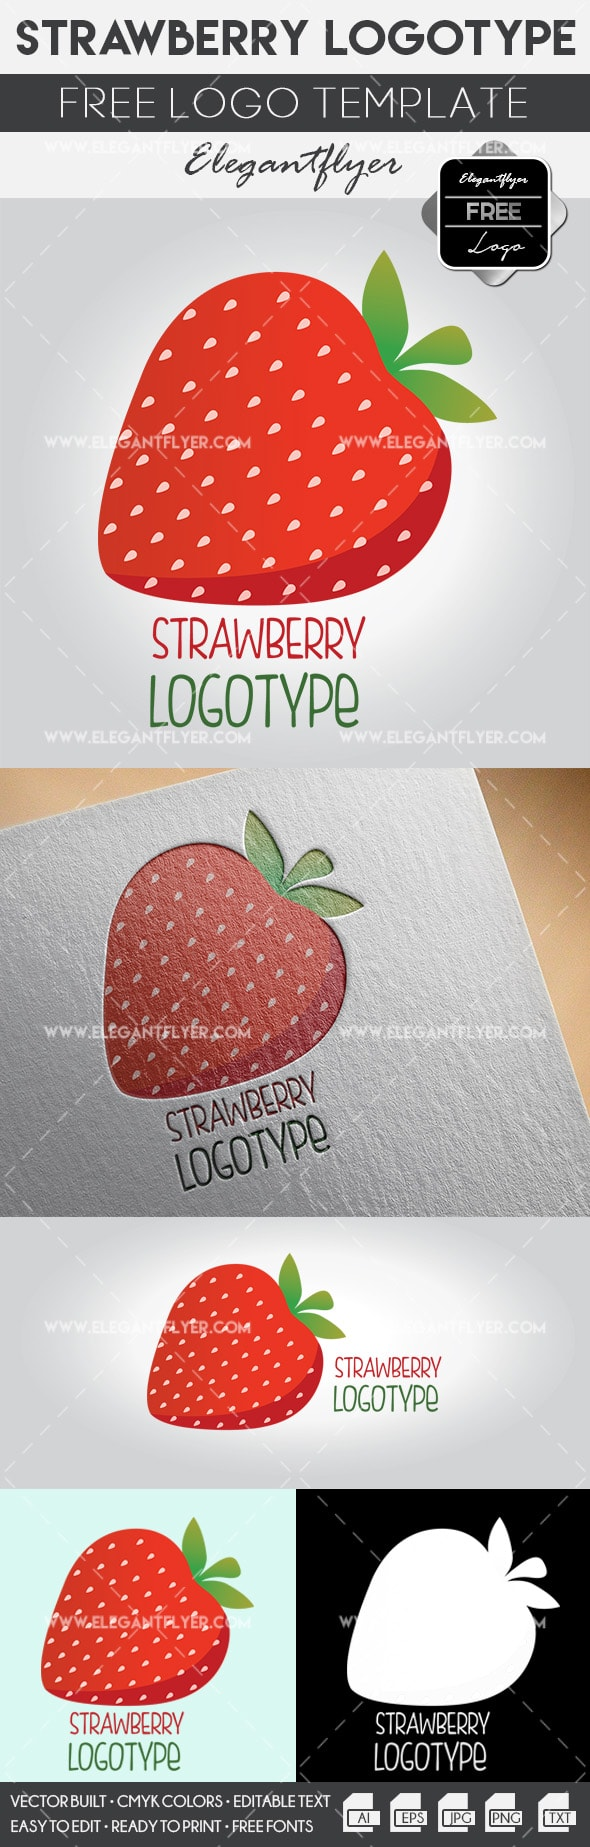 Strawberry – Free Logo Template